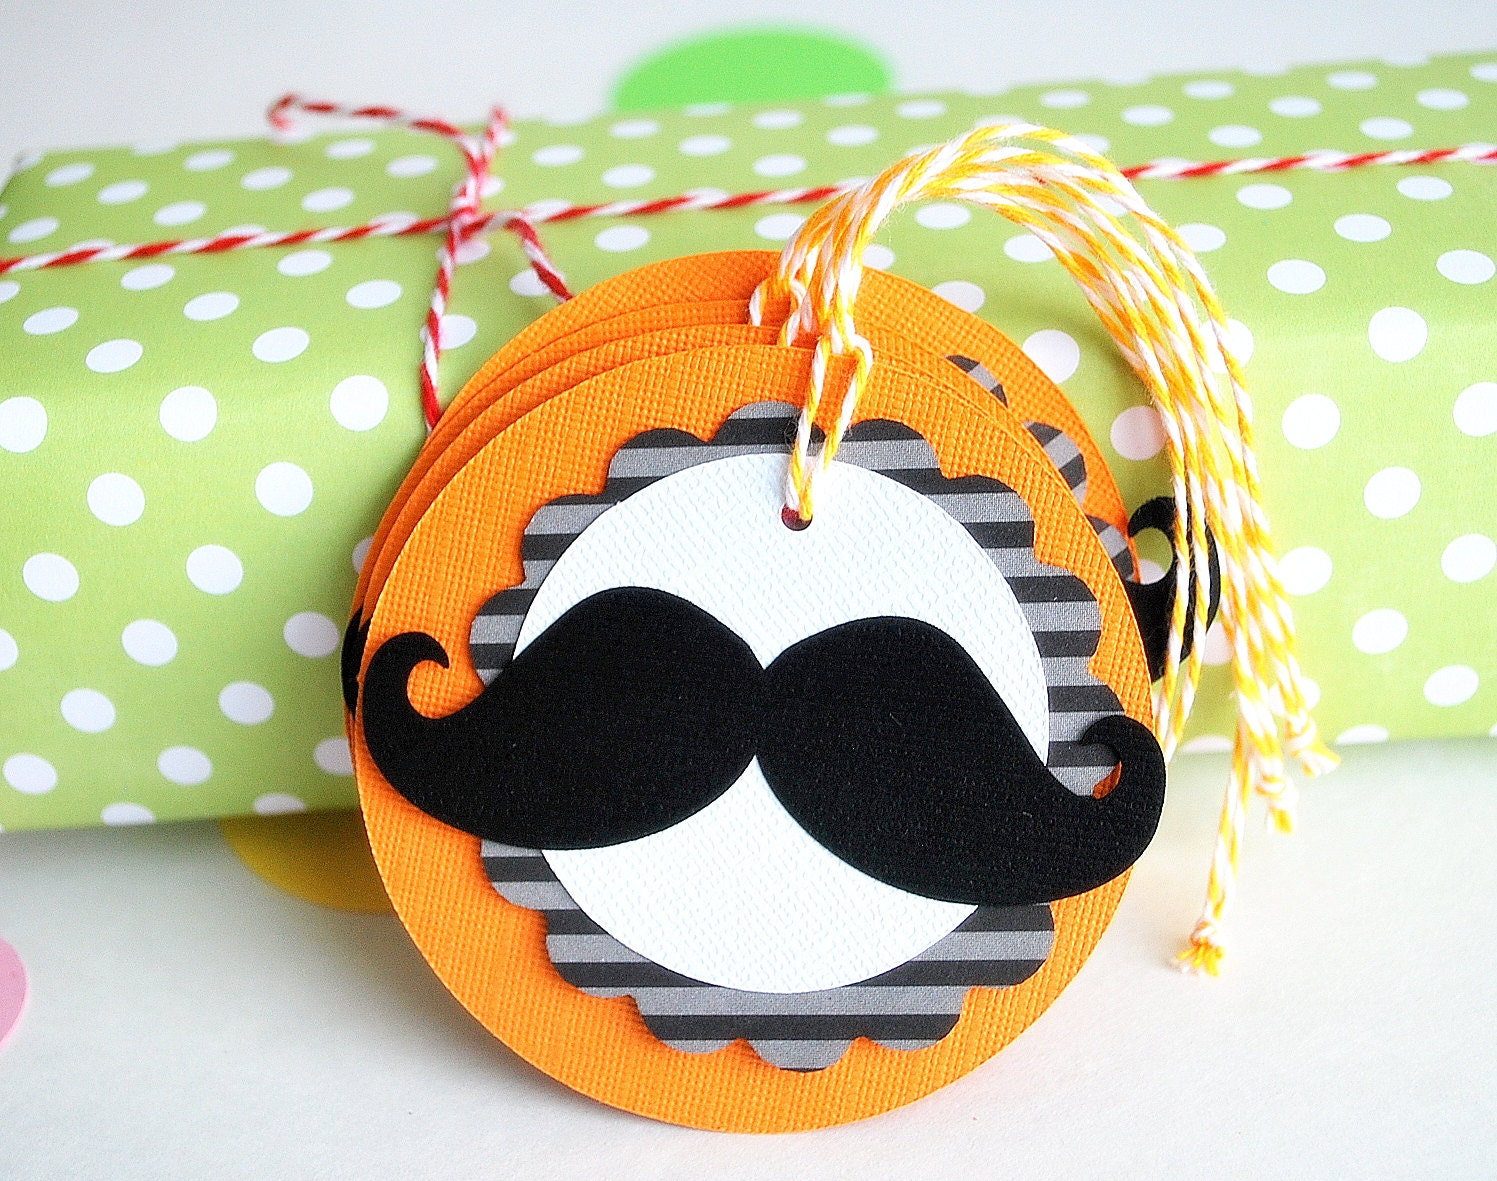 ON SALE 4 Mustache tags, Orange Grey Black Stripped Cardstock tags 3.0 INCHES A668